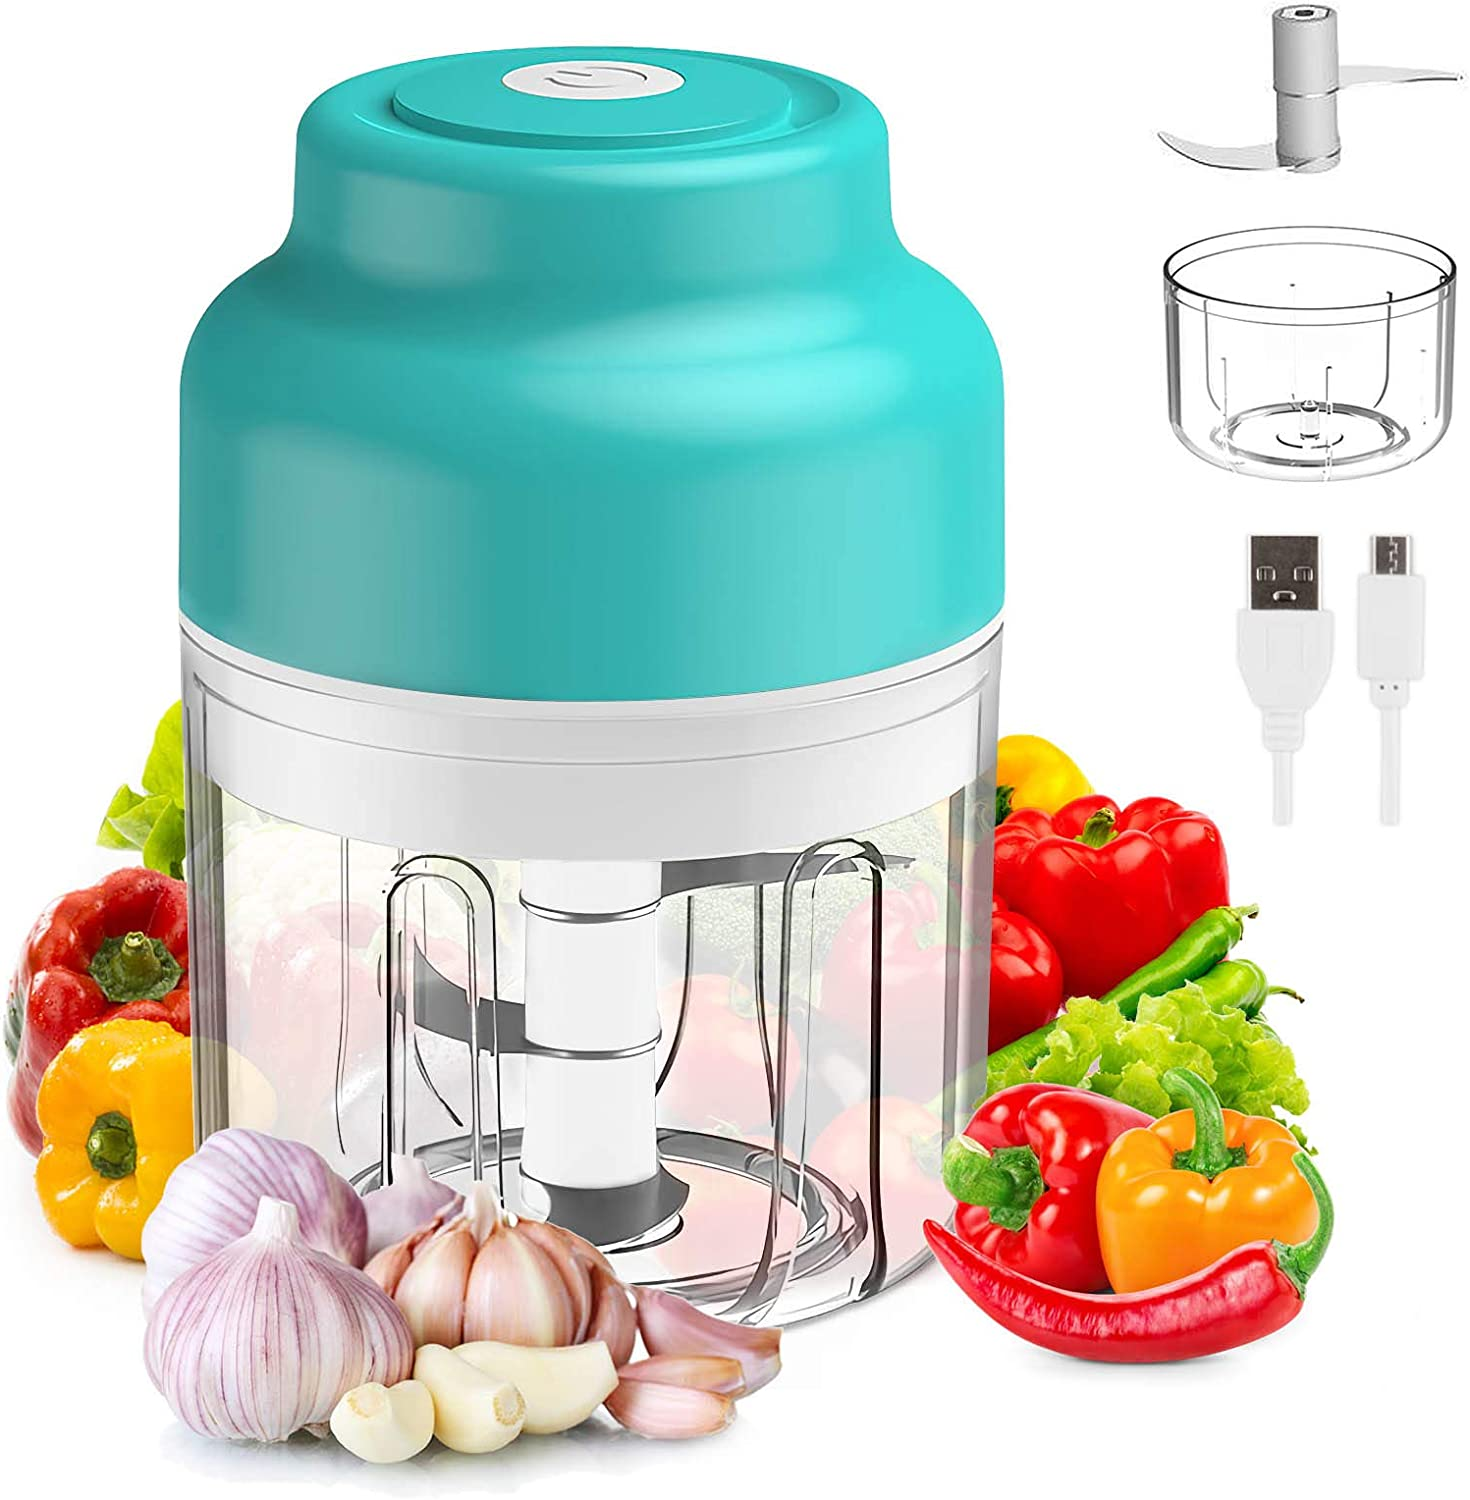 Electric Mini Garlic Chopper, Cordless Mini Food Processor, Veggie Chopper with USB Charging, Food Chopper for Fruits Onions Pepper Chili Vegetable Ginger Spice Salad,250 and 100ml 2Pcs Bowls (Green)